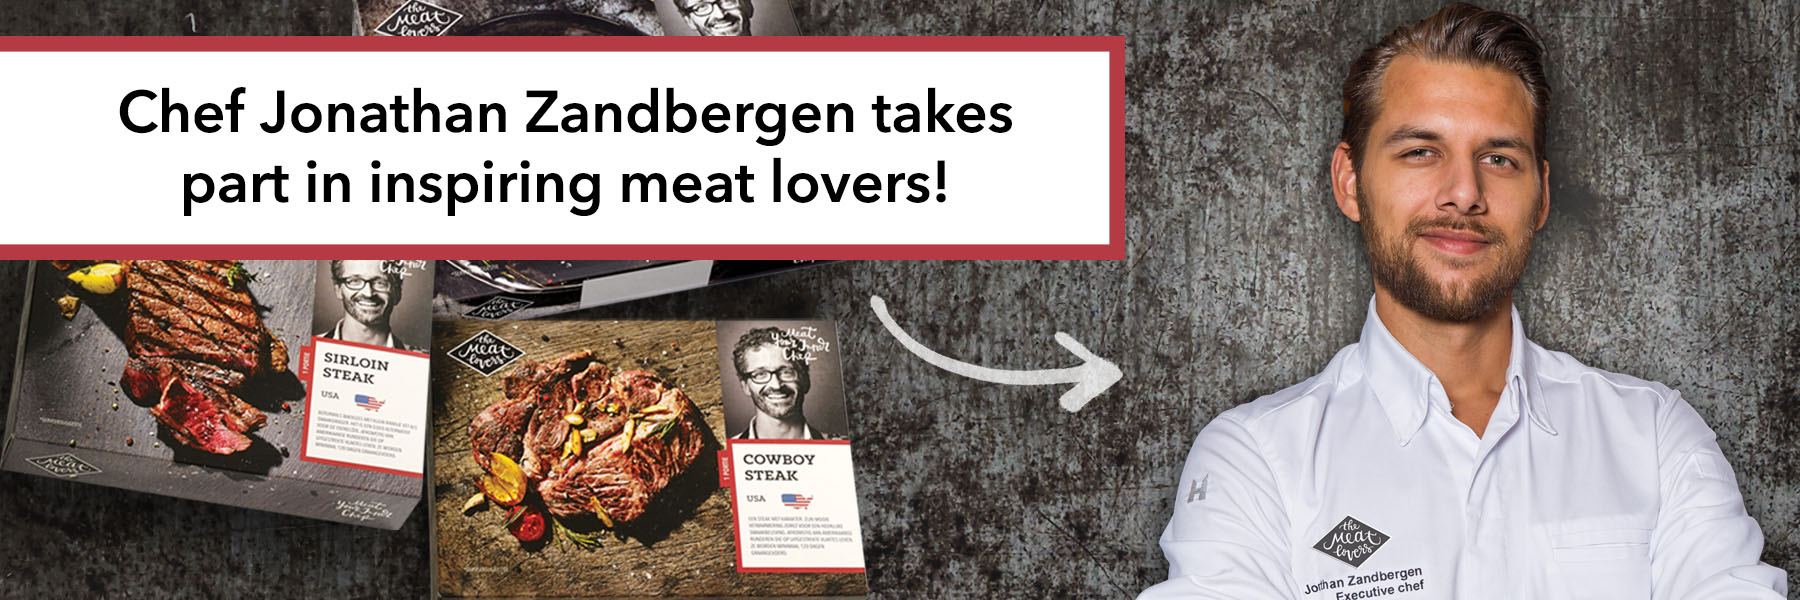 Chef Jonathan Zandbergen commits to The Meatlovers